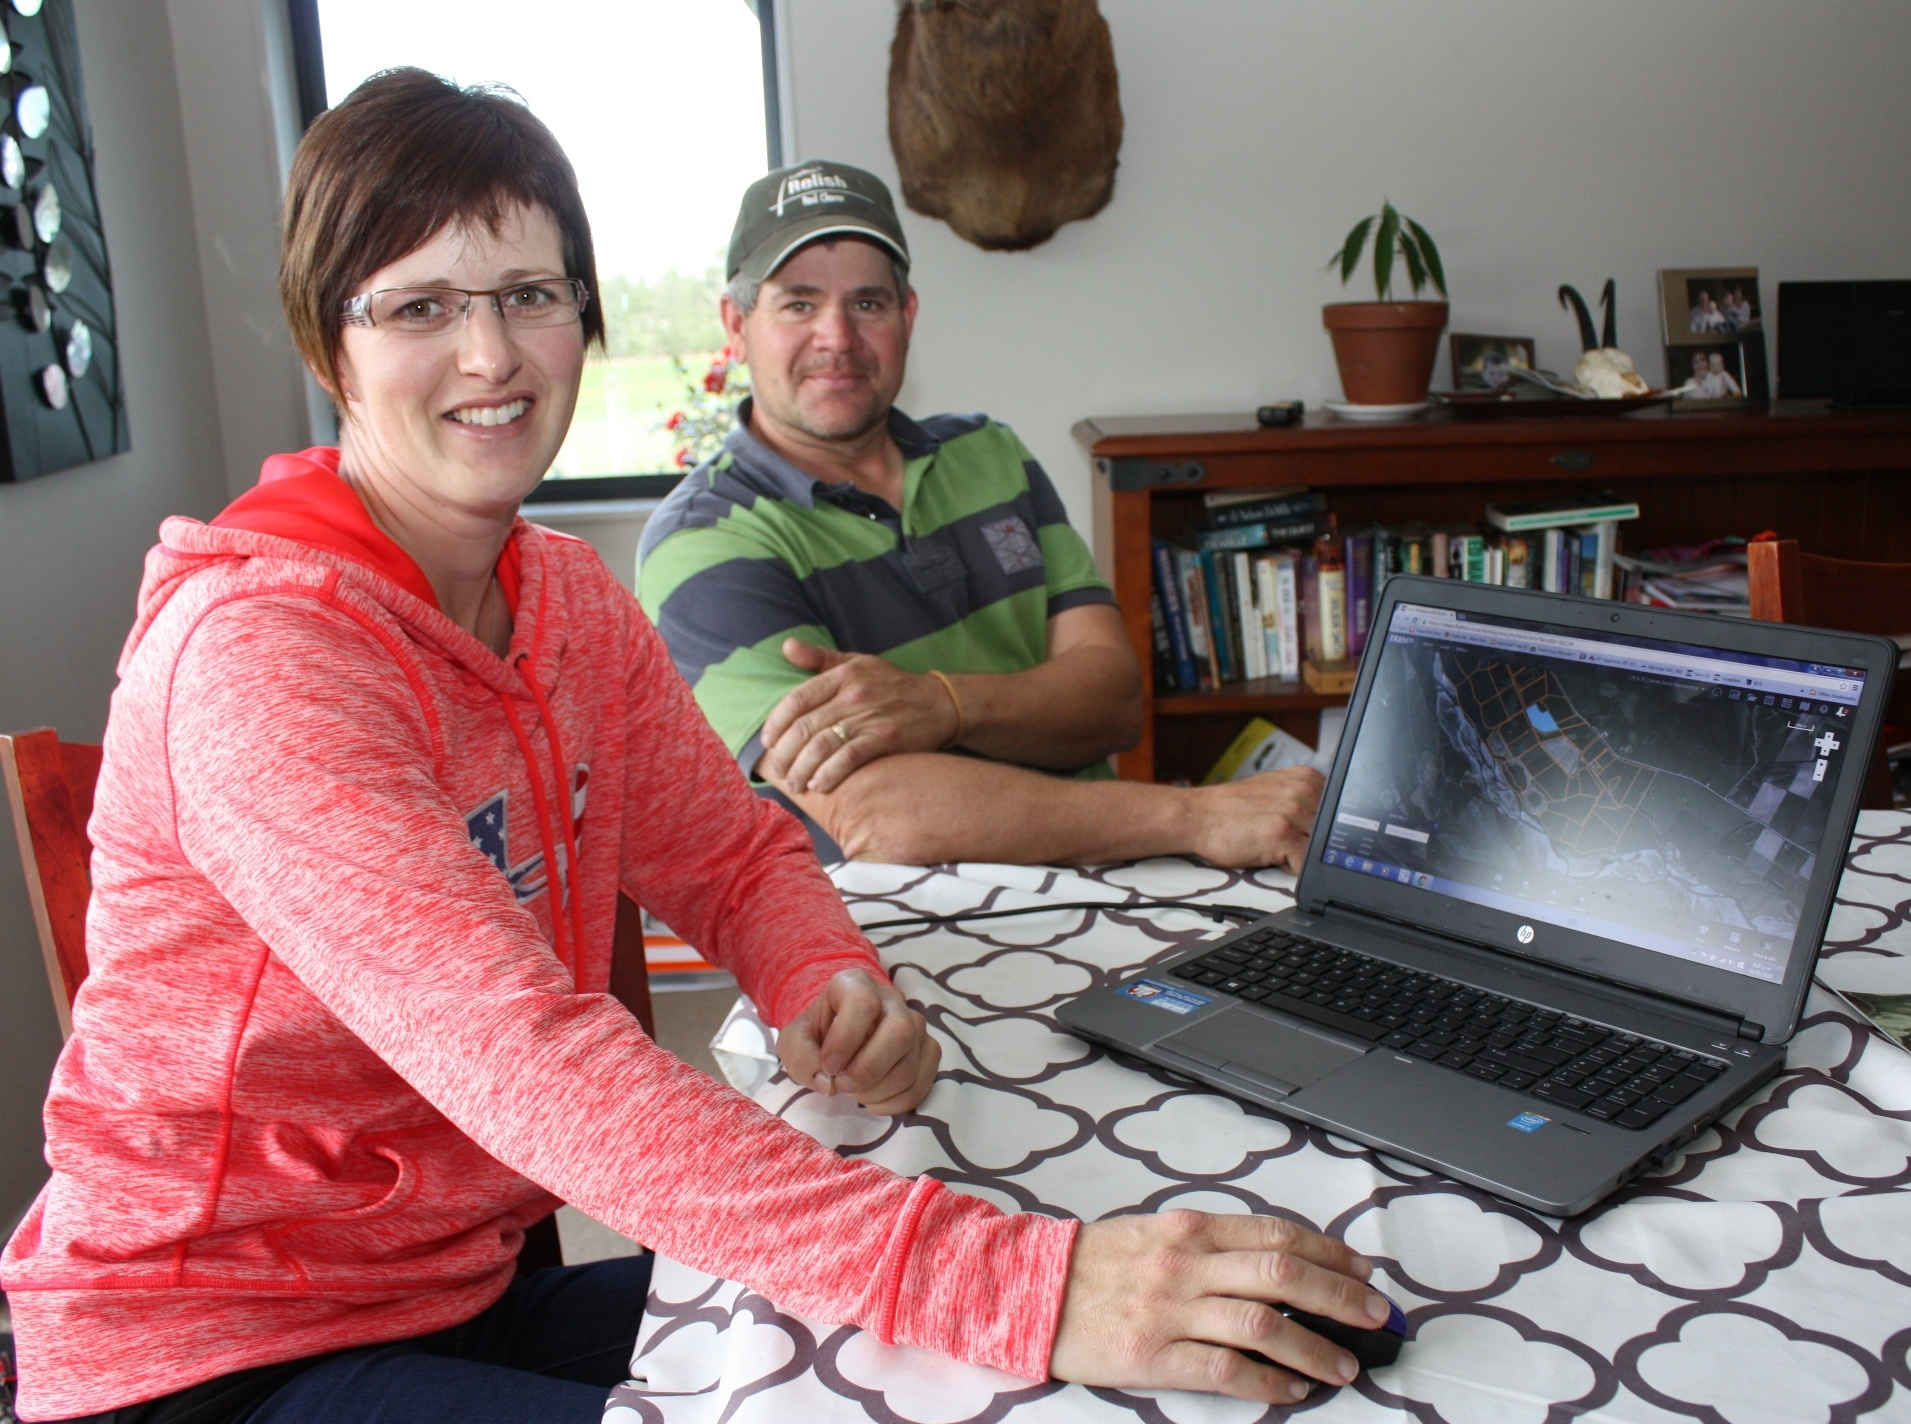 Megan & Justin Vande Sandt - Farm software is making the bookwork easier